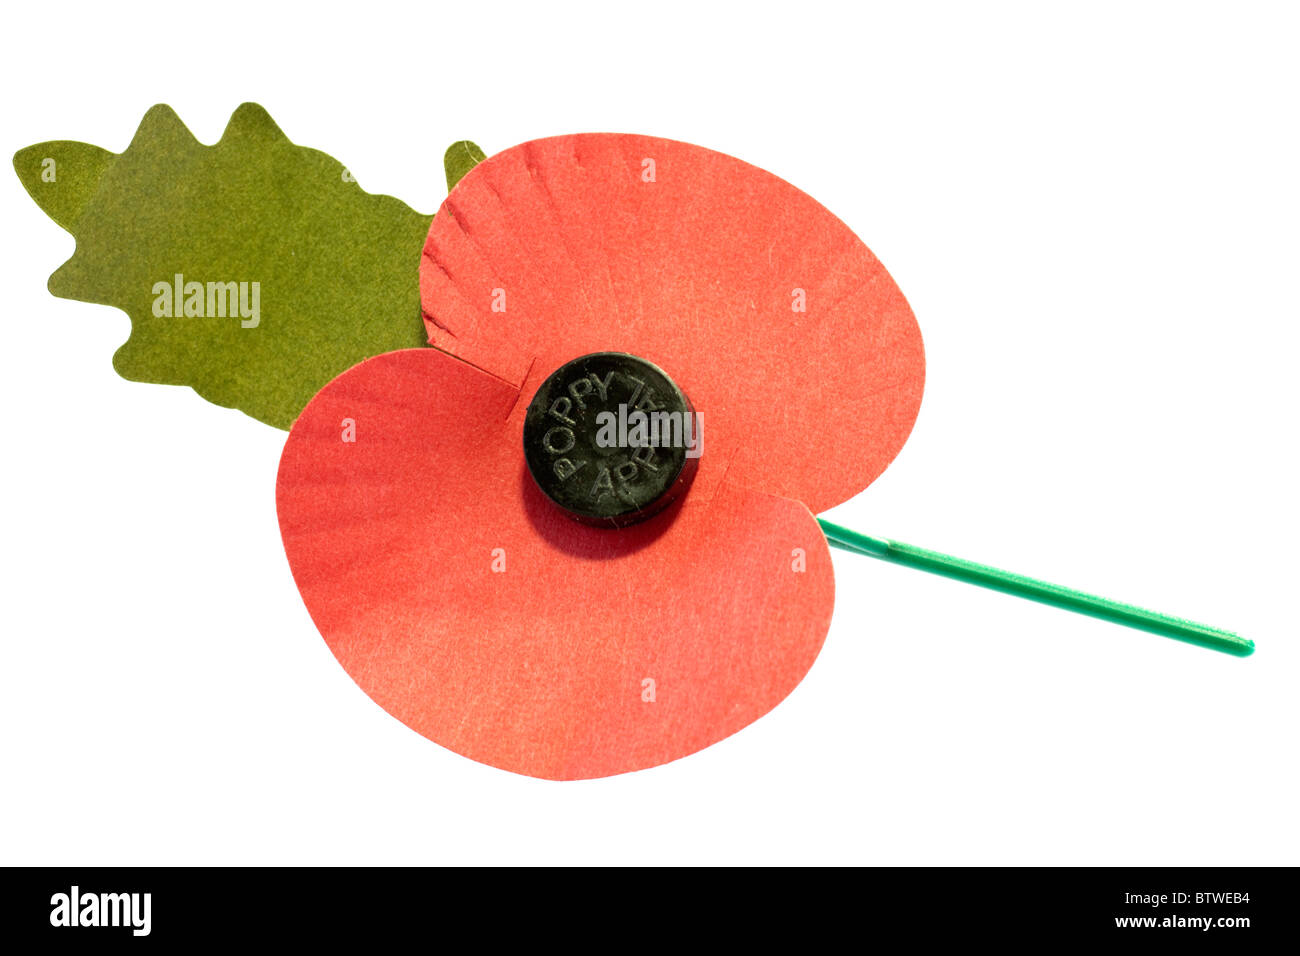 Poppy appeal - Stock Image